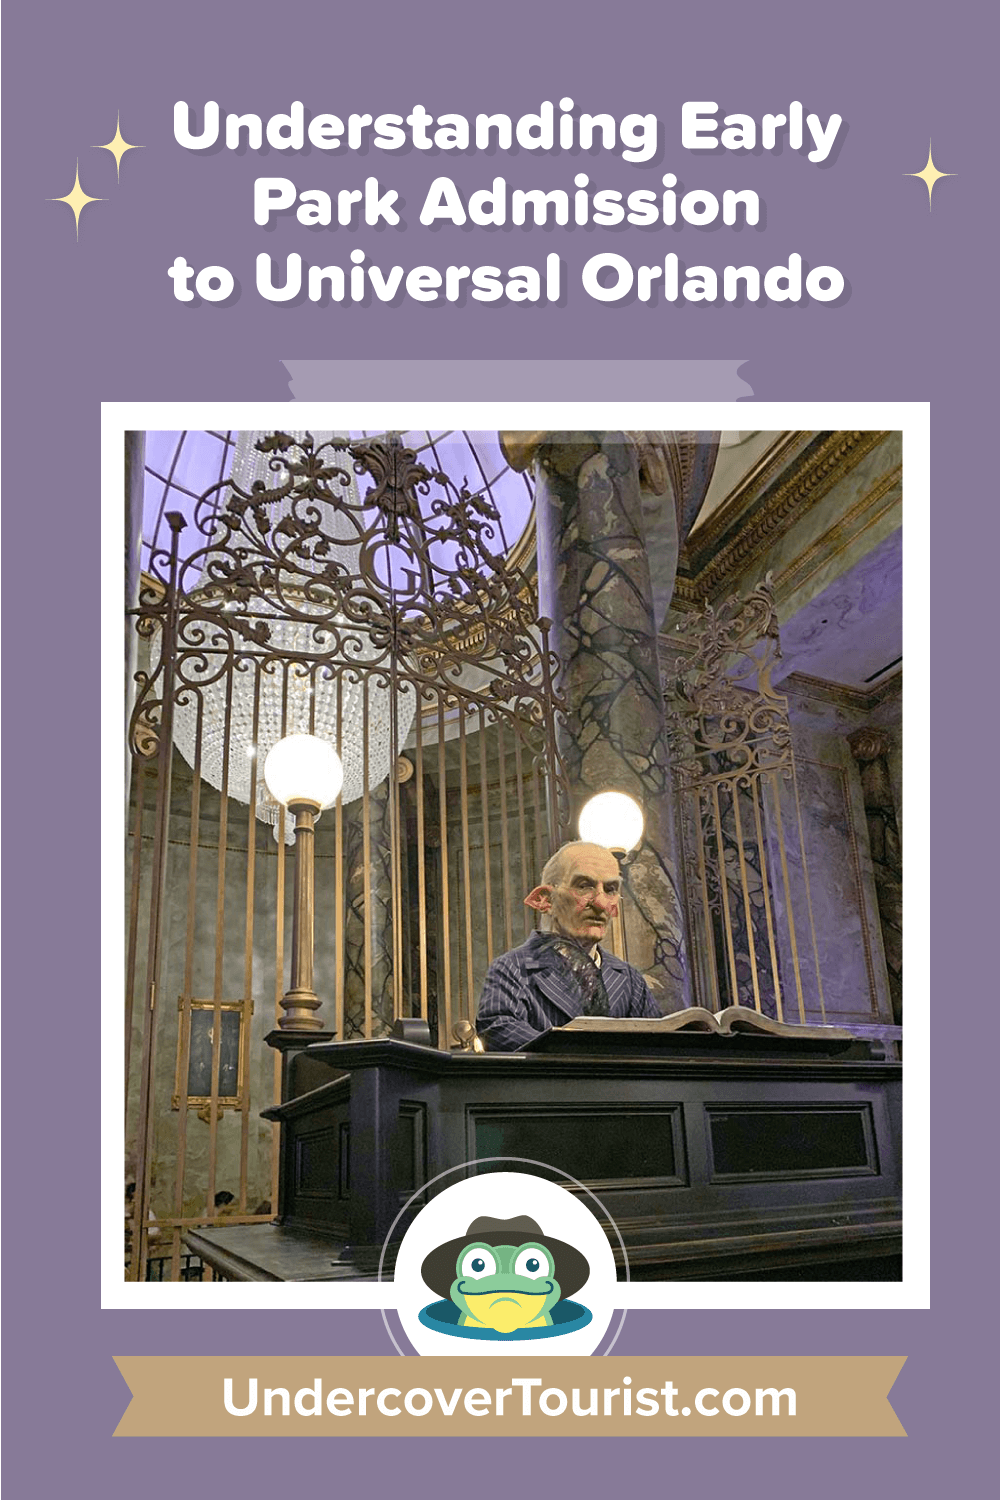 Understanding Early Park Admission for Universal Orlando